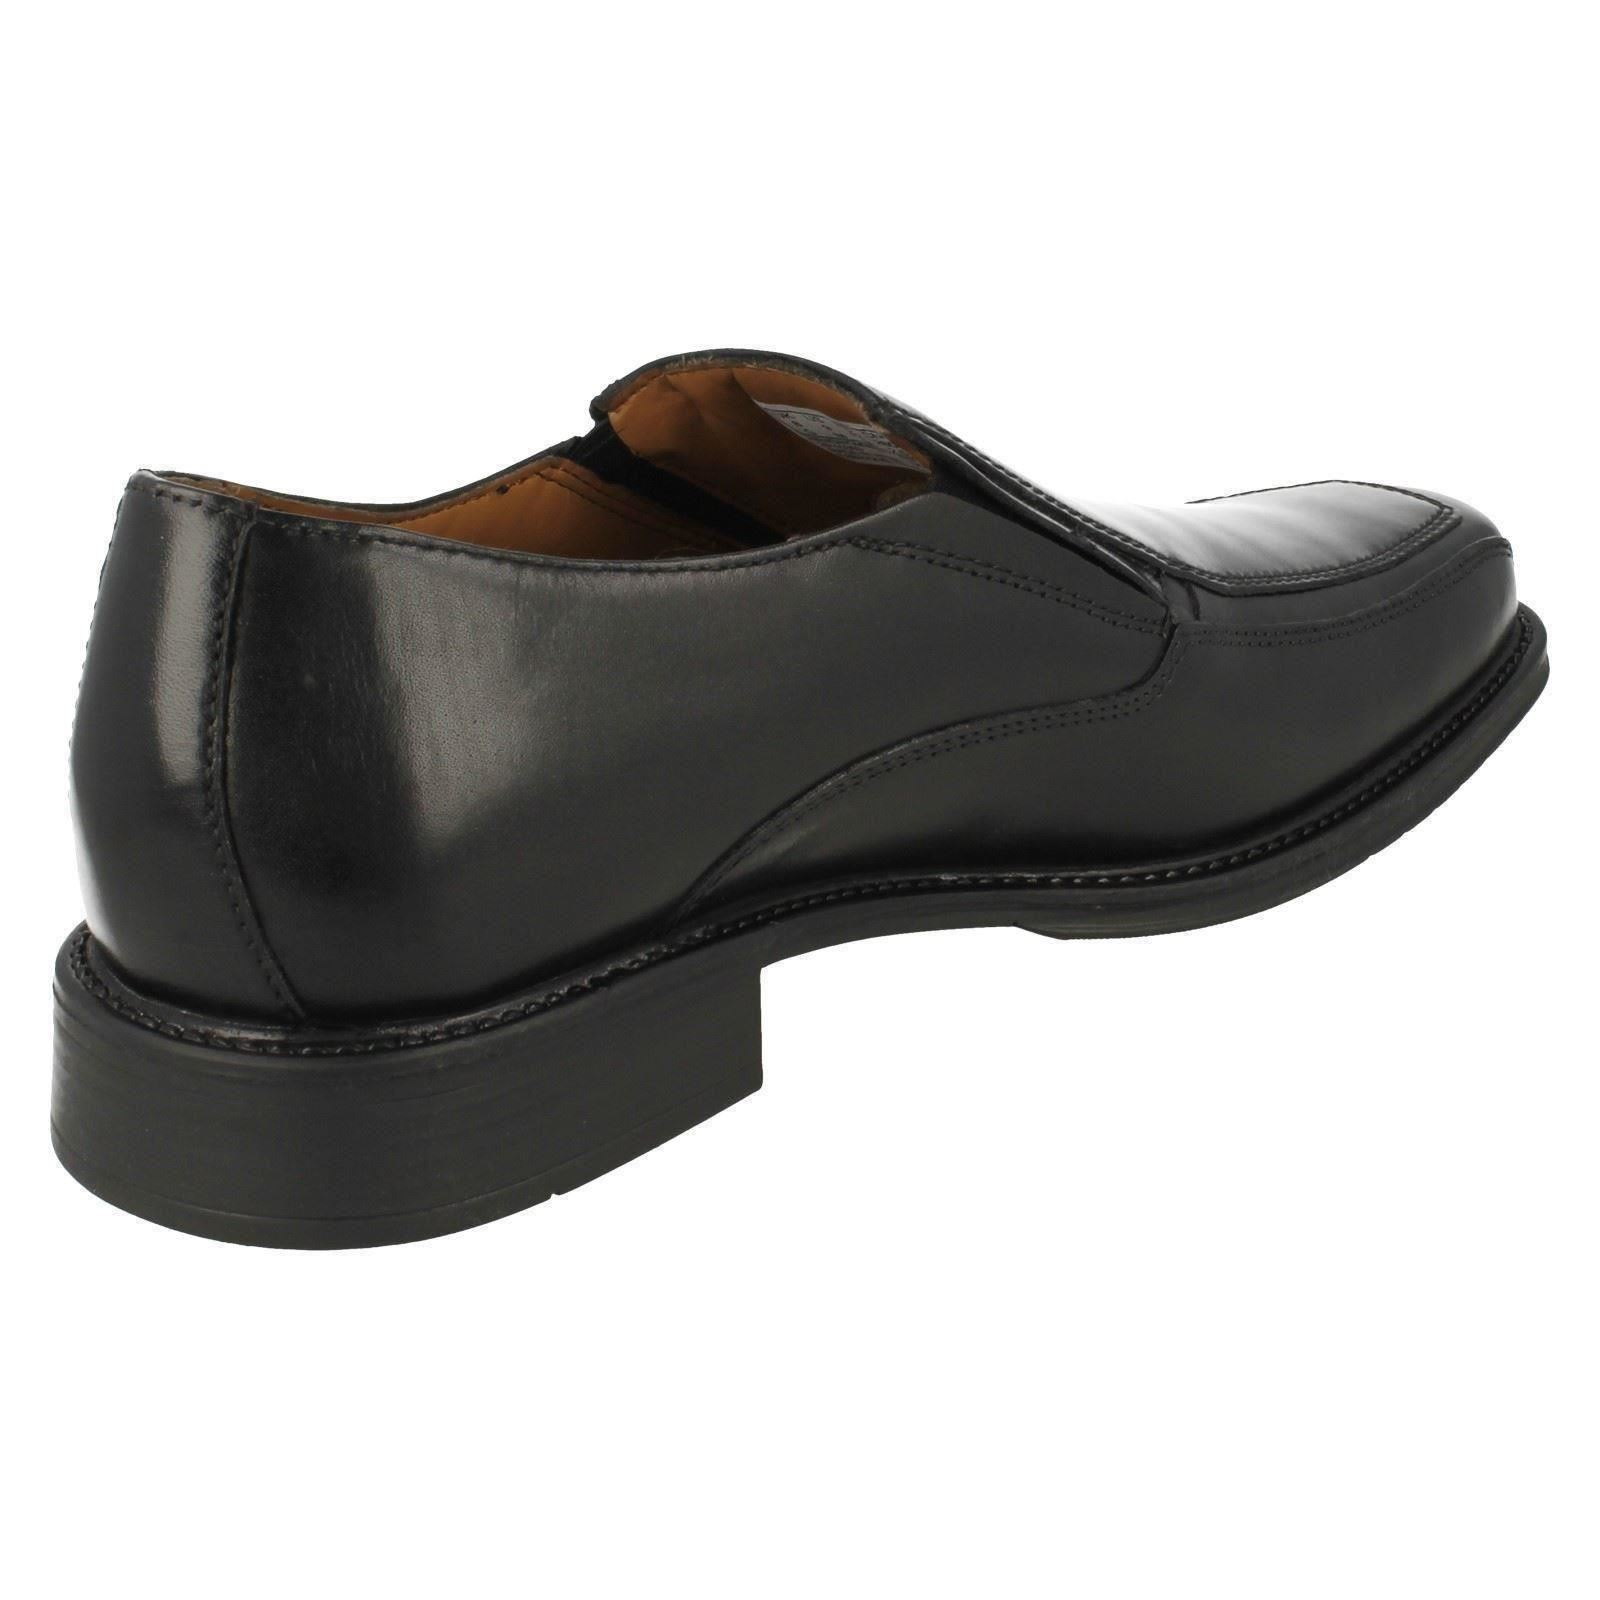 Herren Clarks Formal Slip On Schuhes Driggs Driggs Schuhes Free a073a5